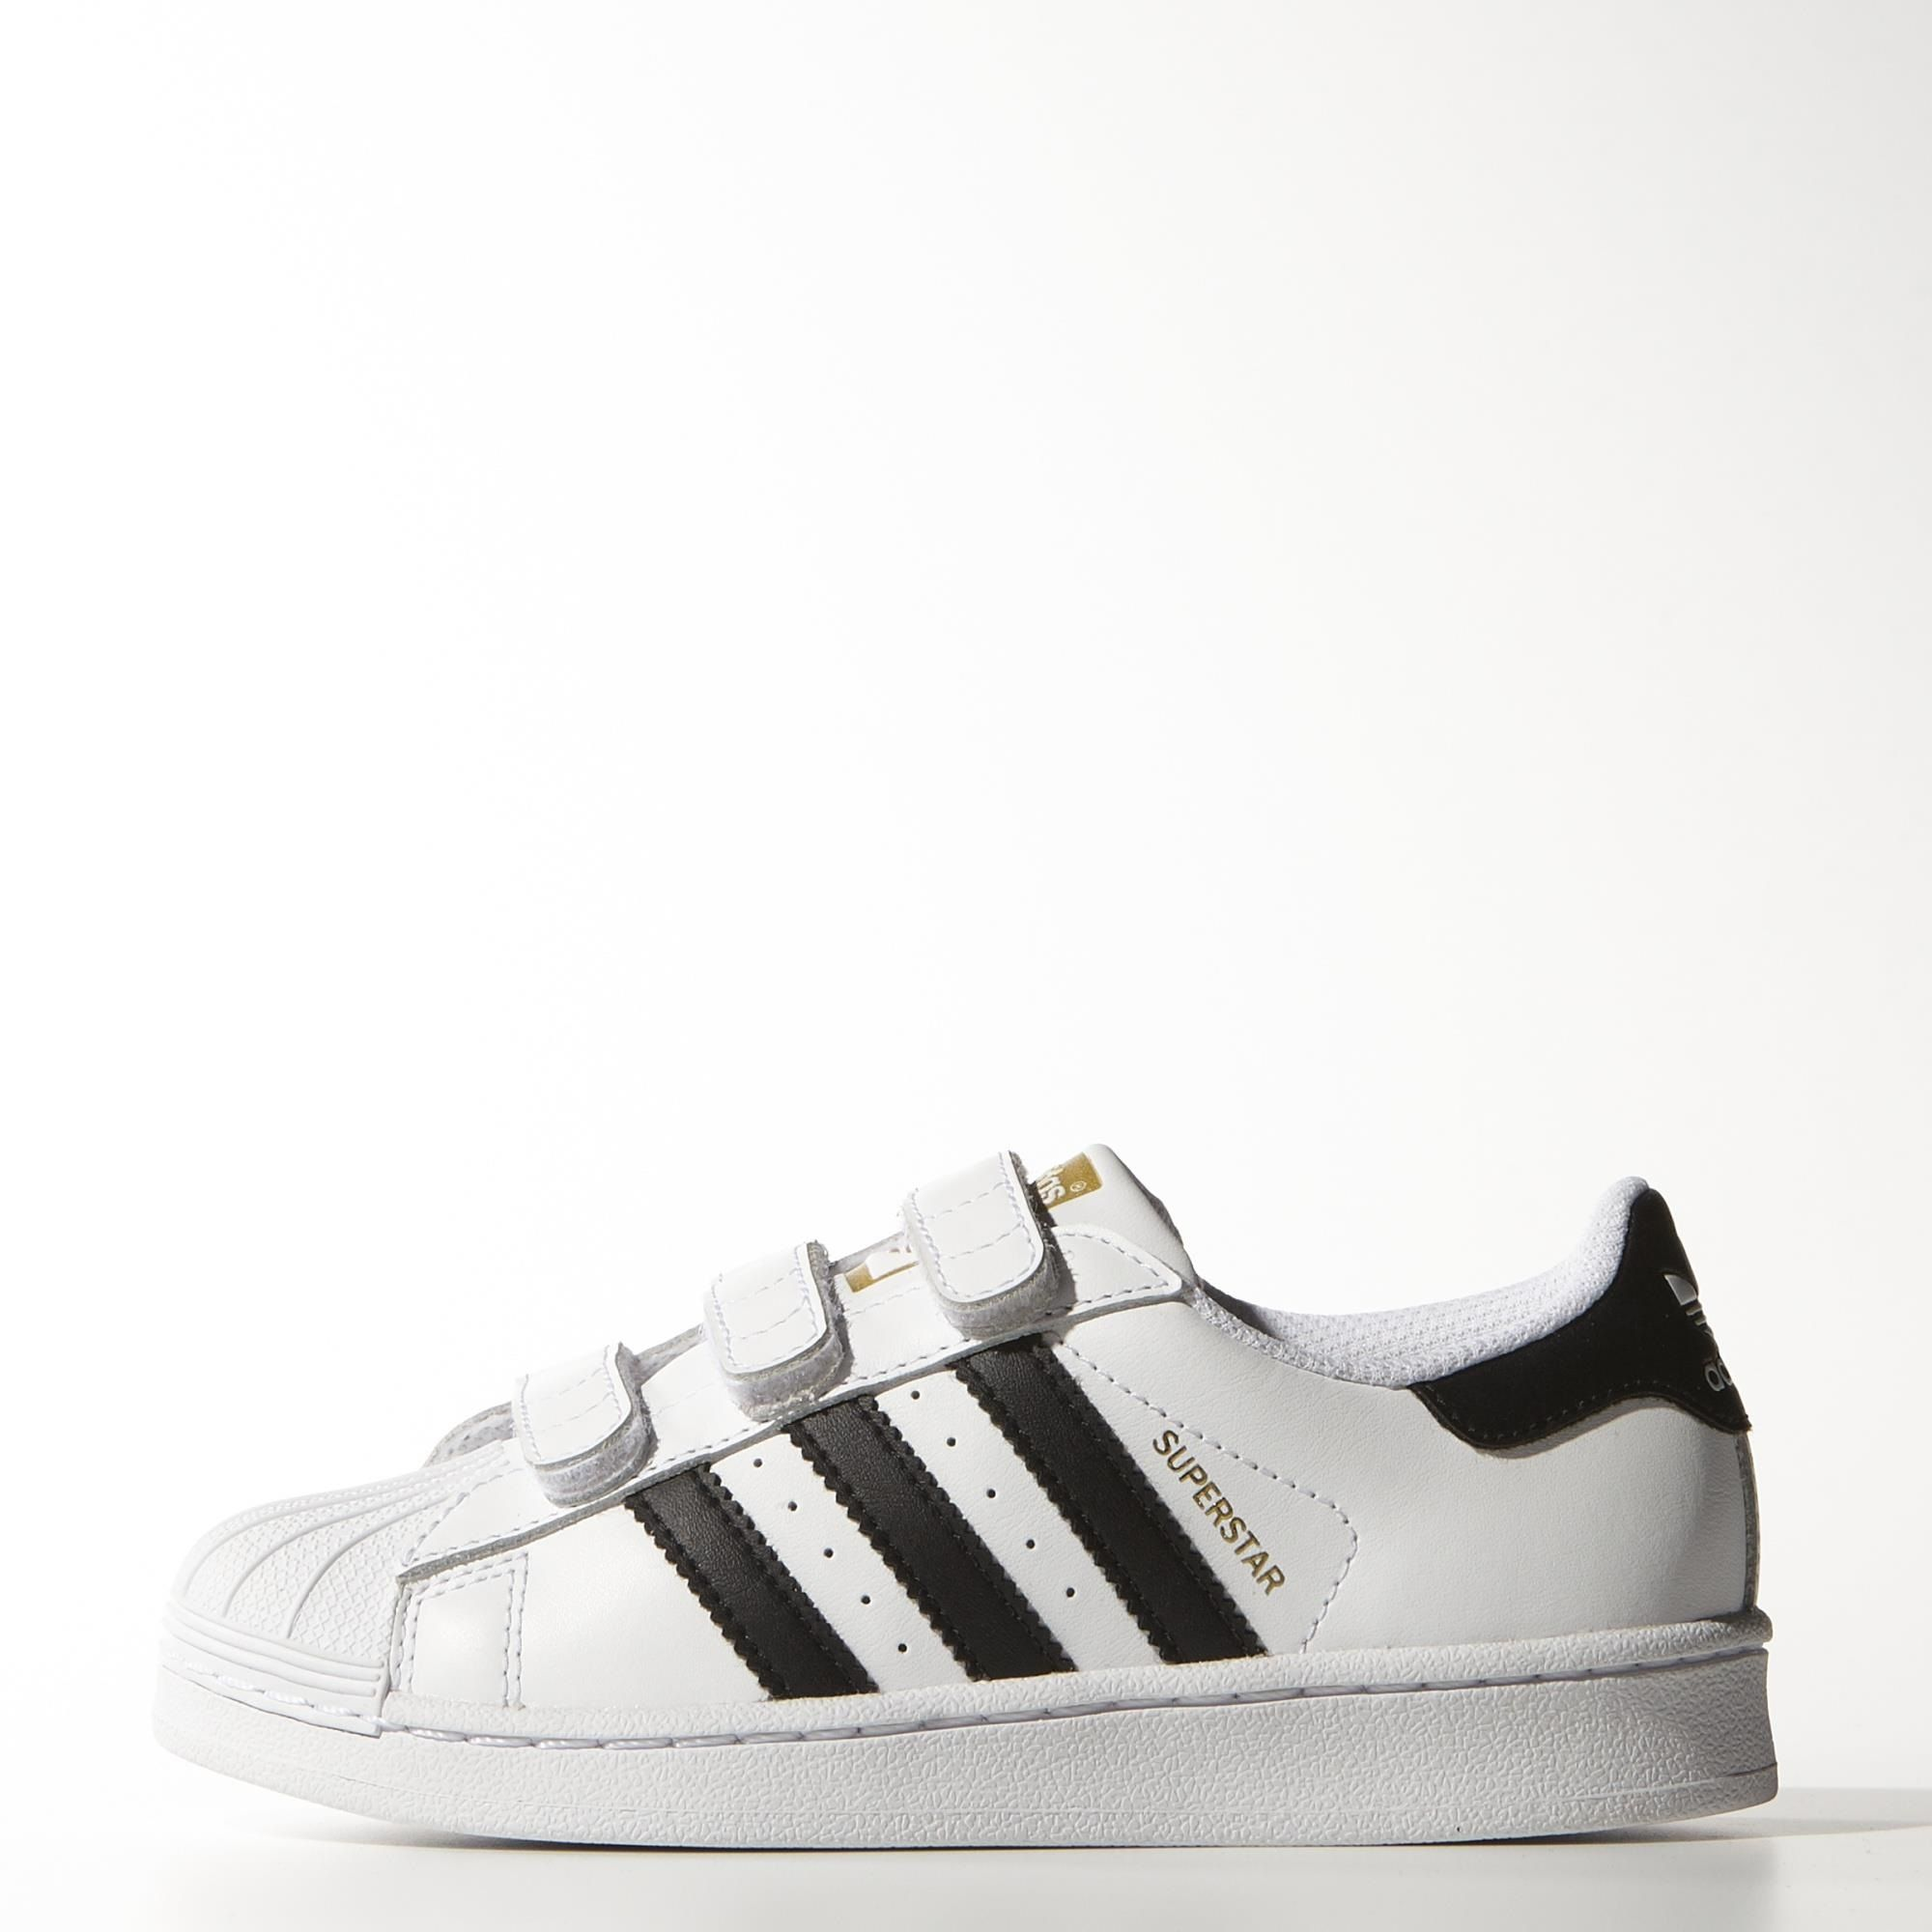 Inspired by the iconic '70s basketball shoe, the adidas Originals Superstar  downsizes the classic